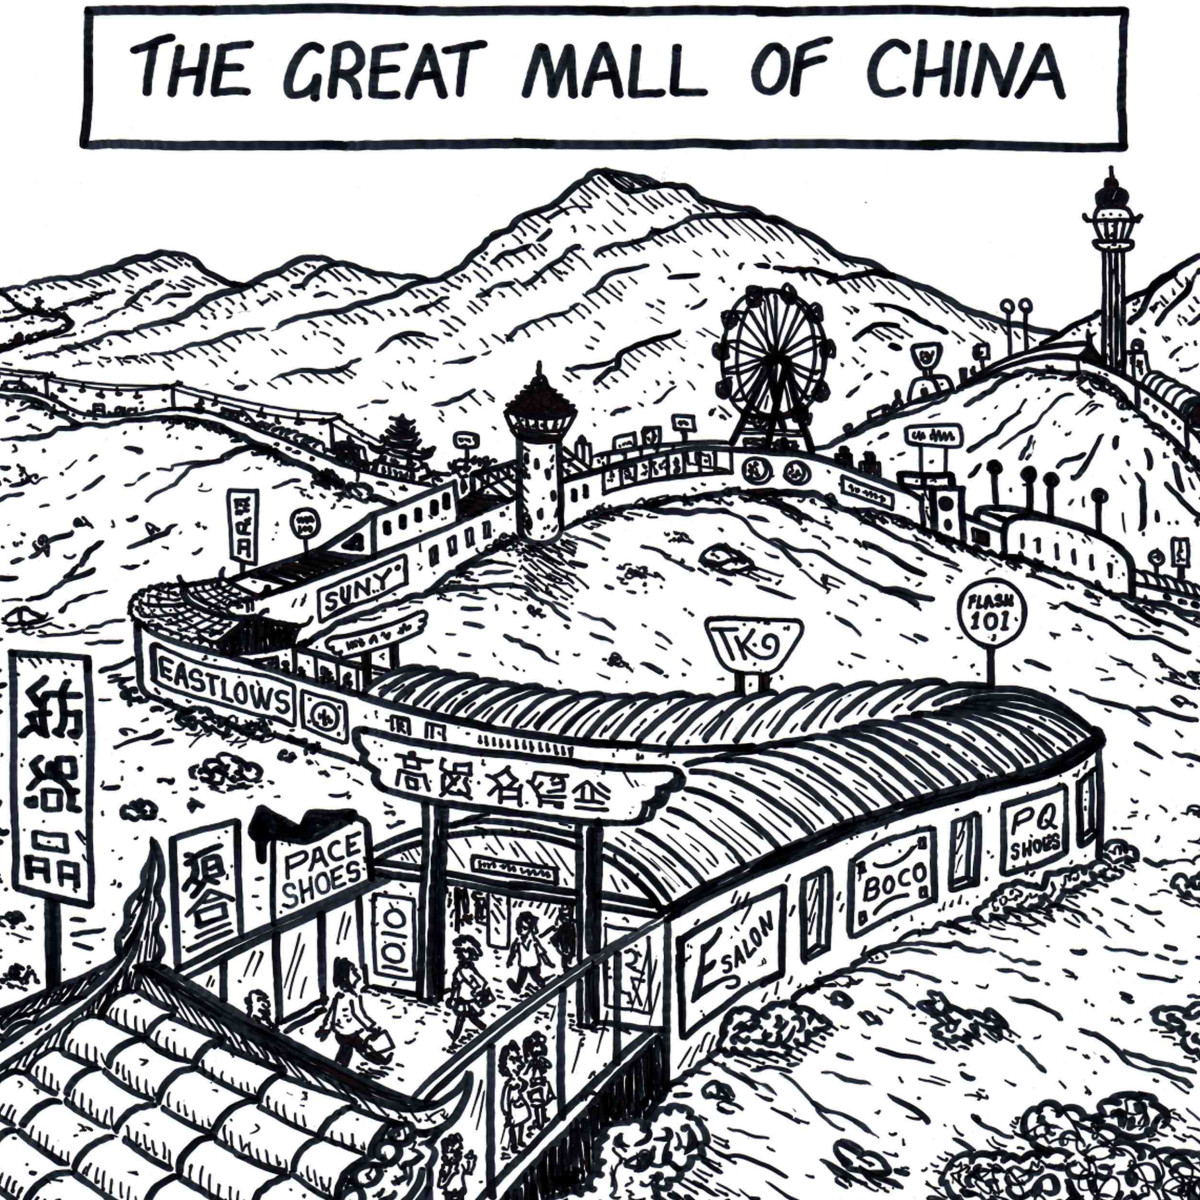 The Great Shopping Mall: The market nationalist logic of Chinese social media